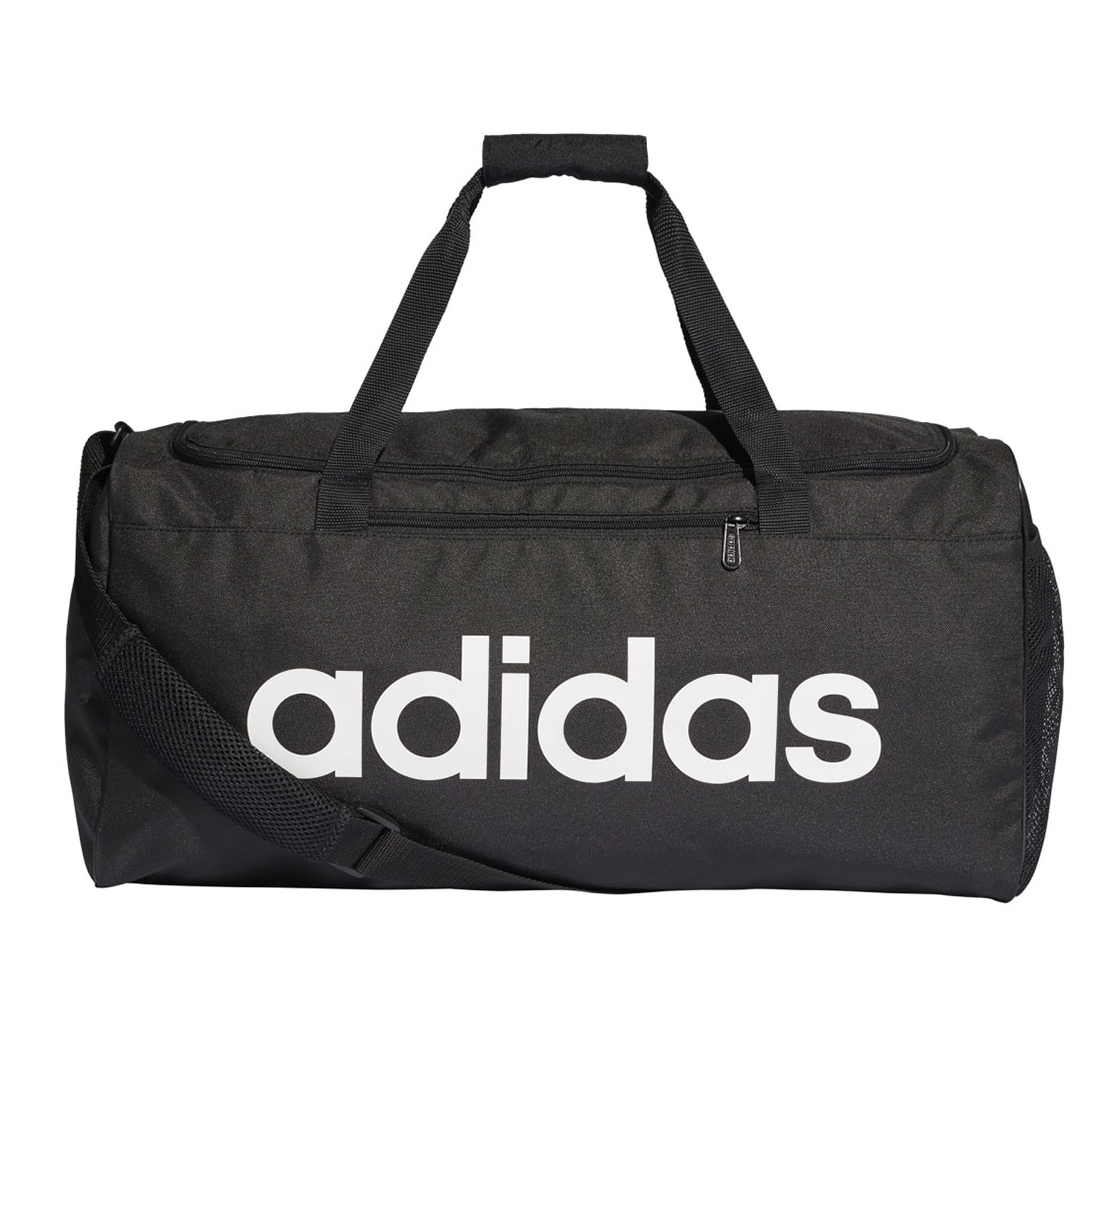 Adidas Ss19 Linear Core Duffel Bag M